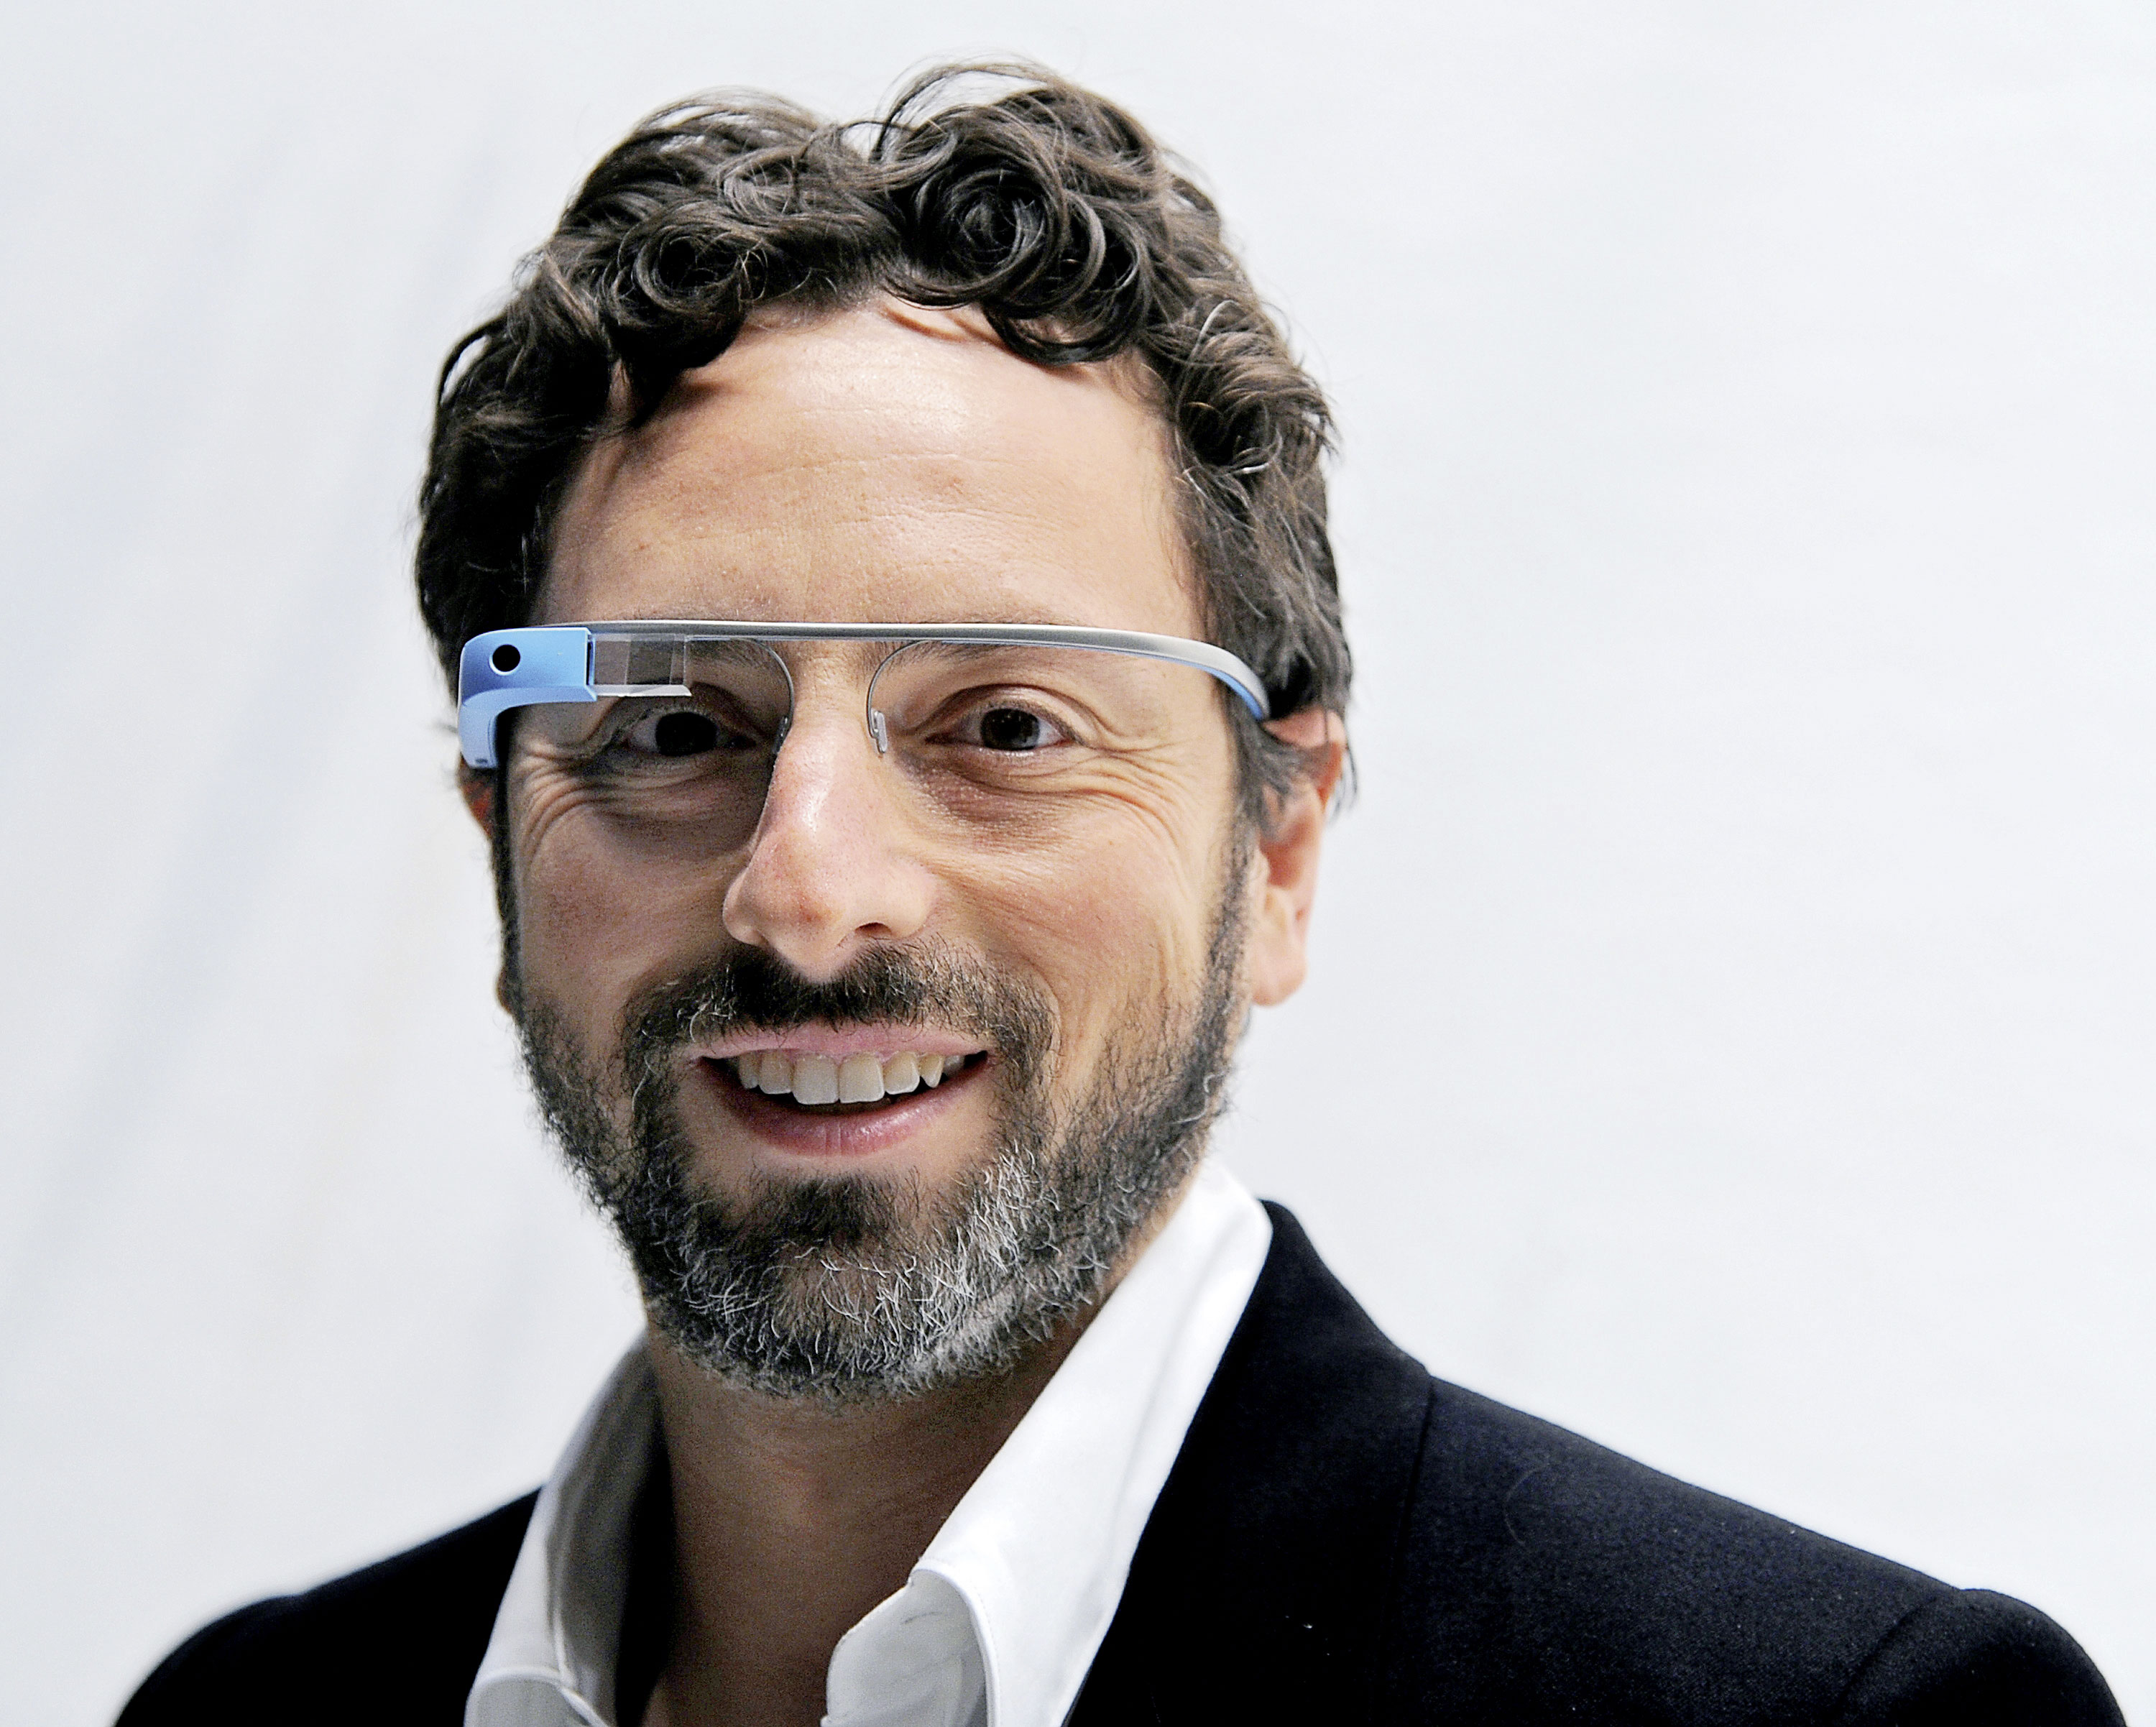 Sergey Brin - Biography